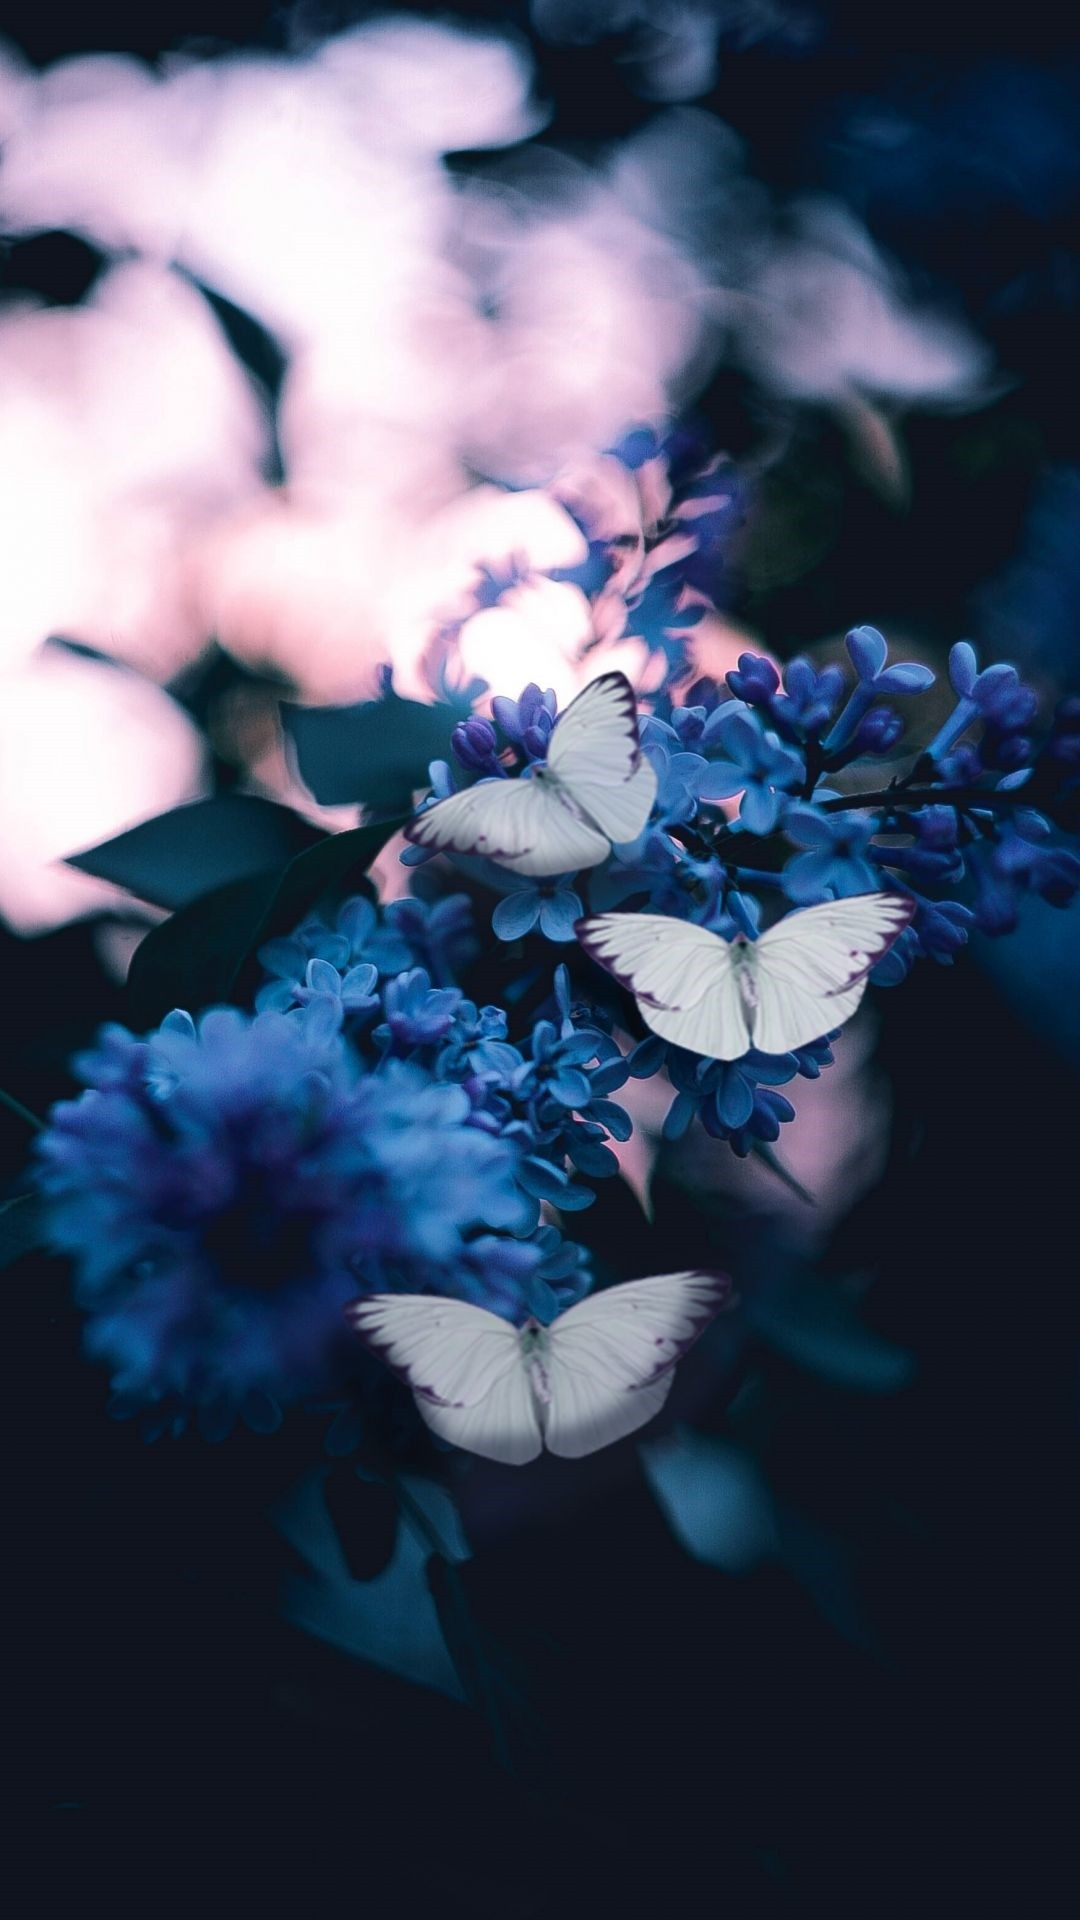 Aesthetic Butterfly wallpaper for android